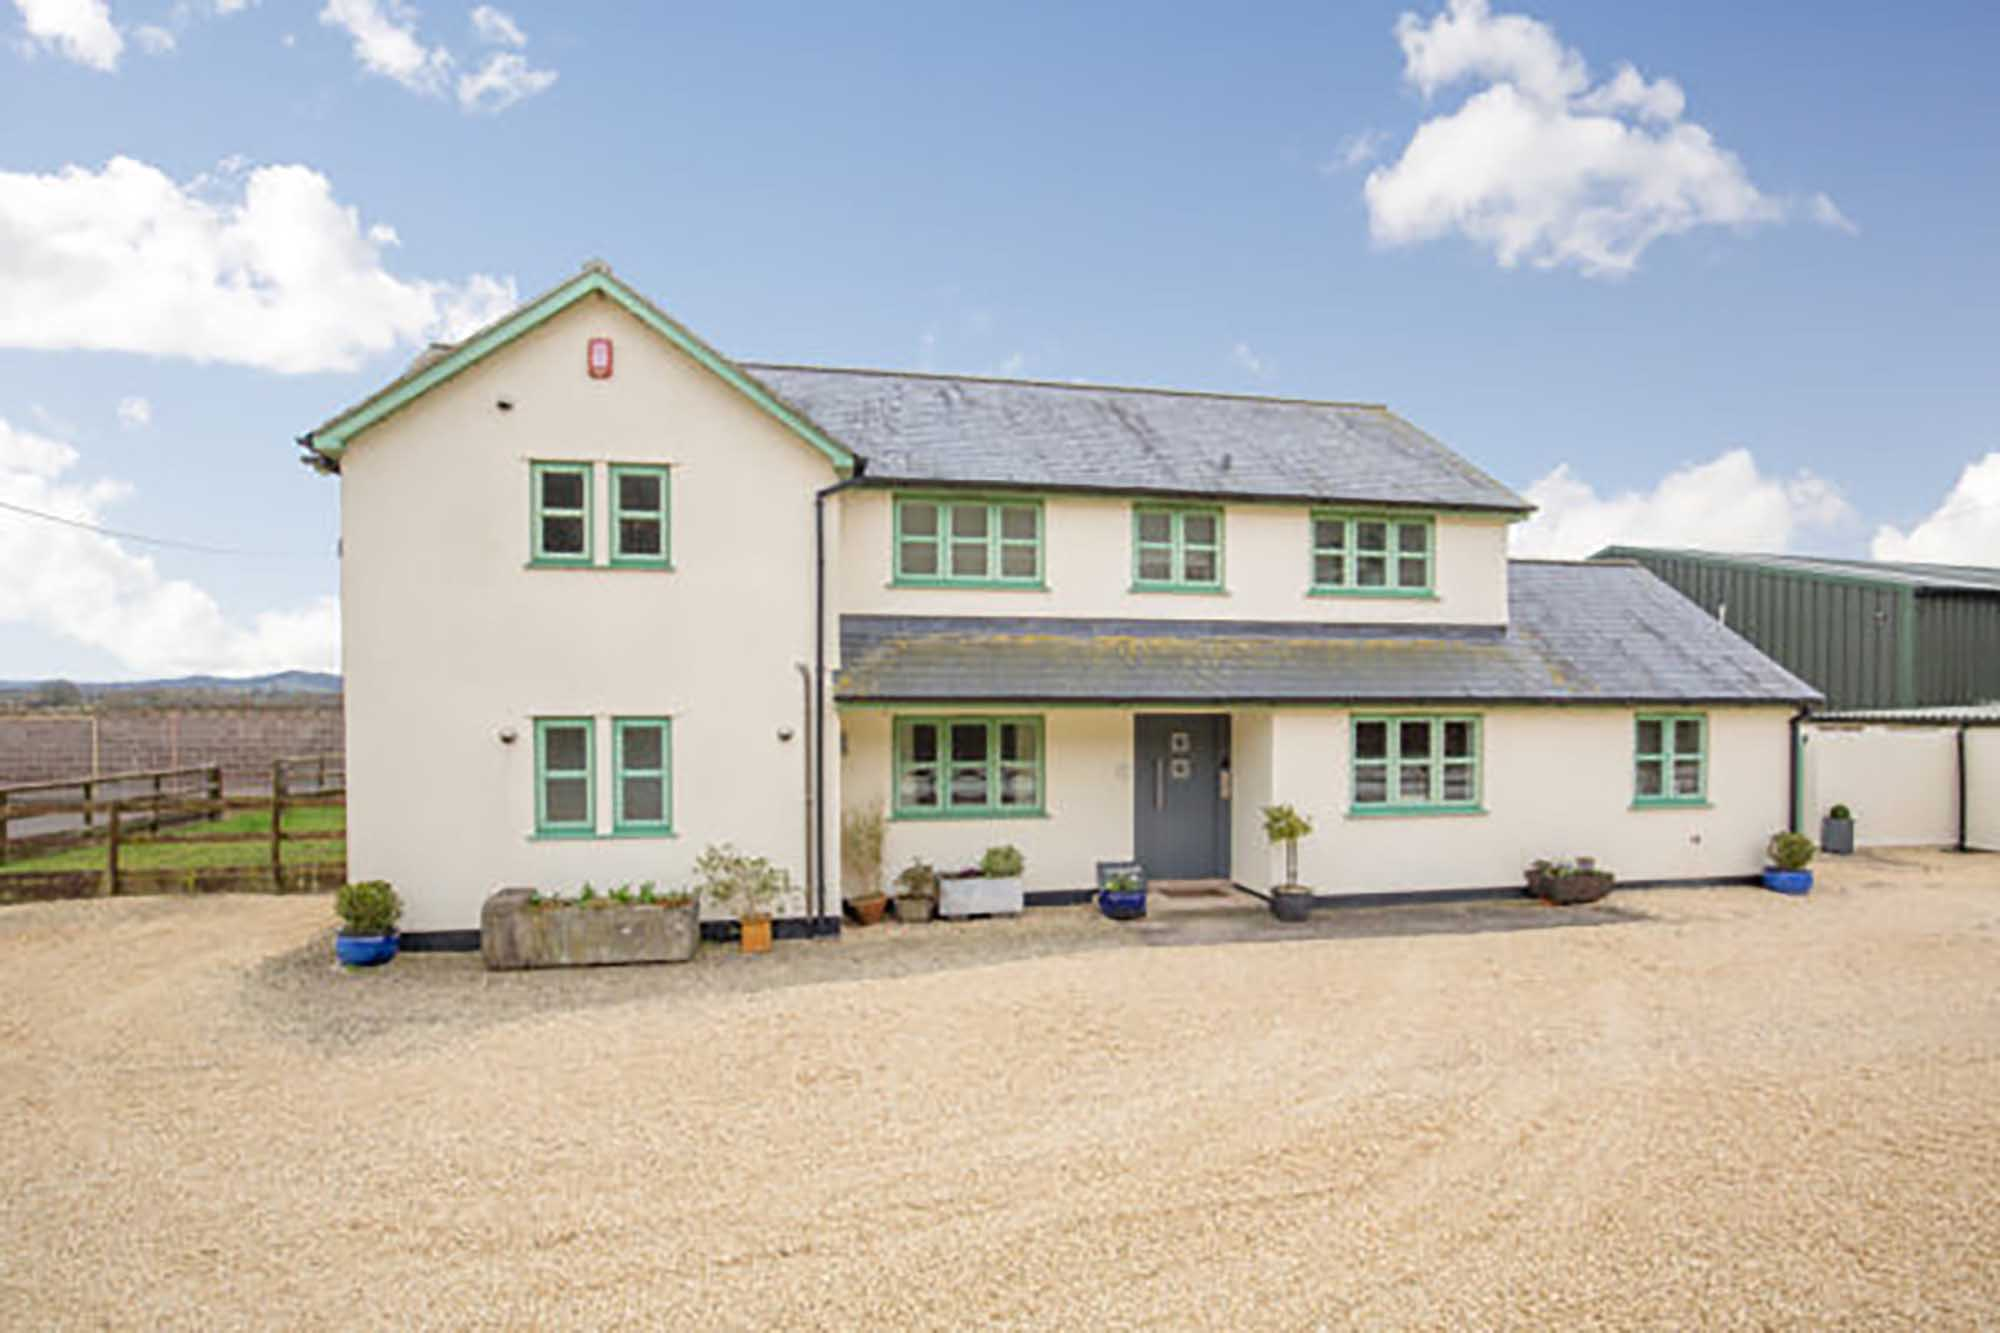 Rural idyll a few miles from Wells with extra land available